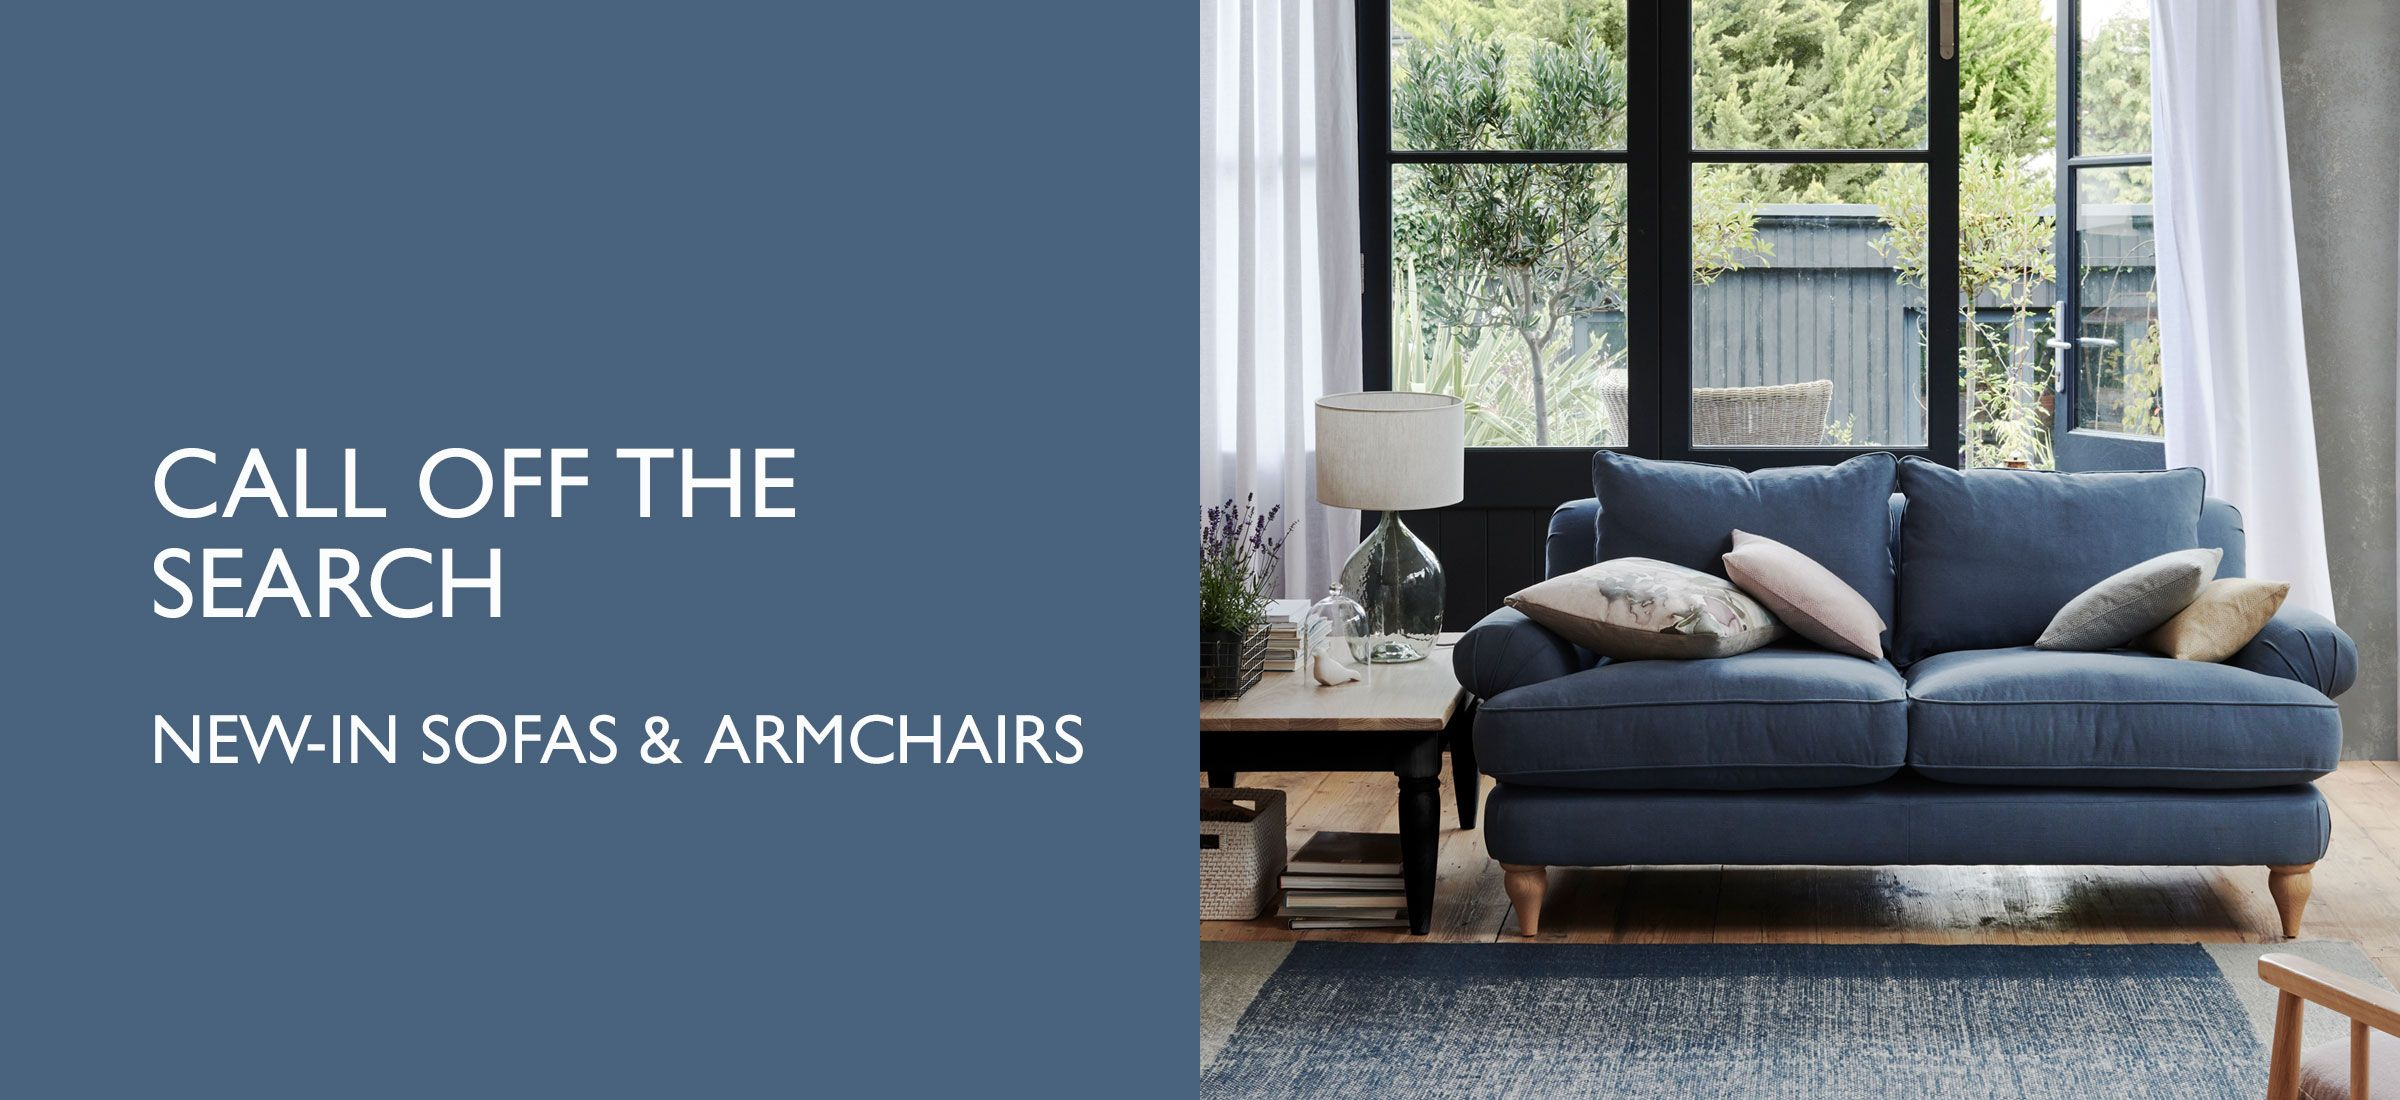 New-in Sofas & Armchairs